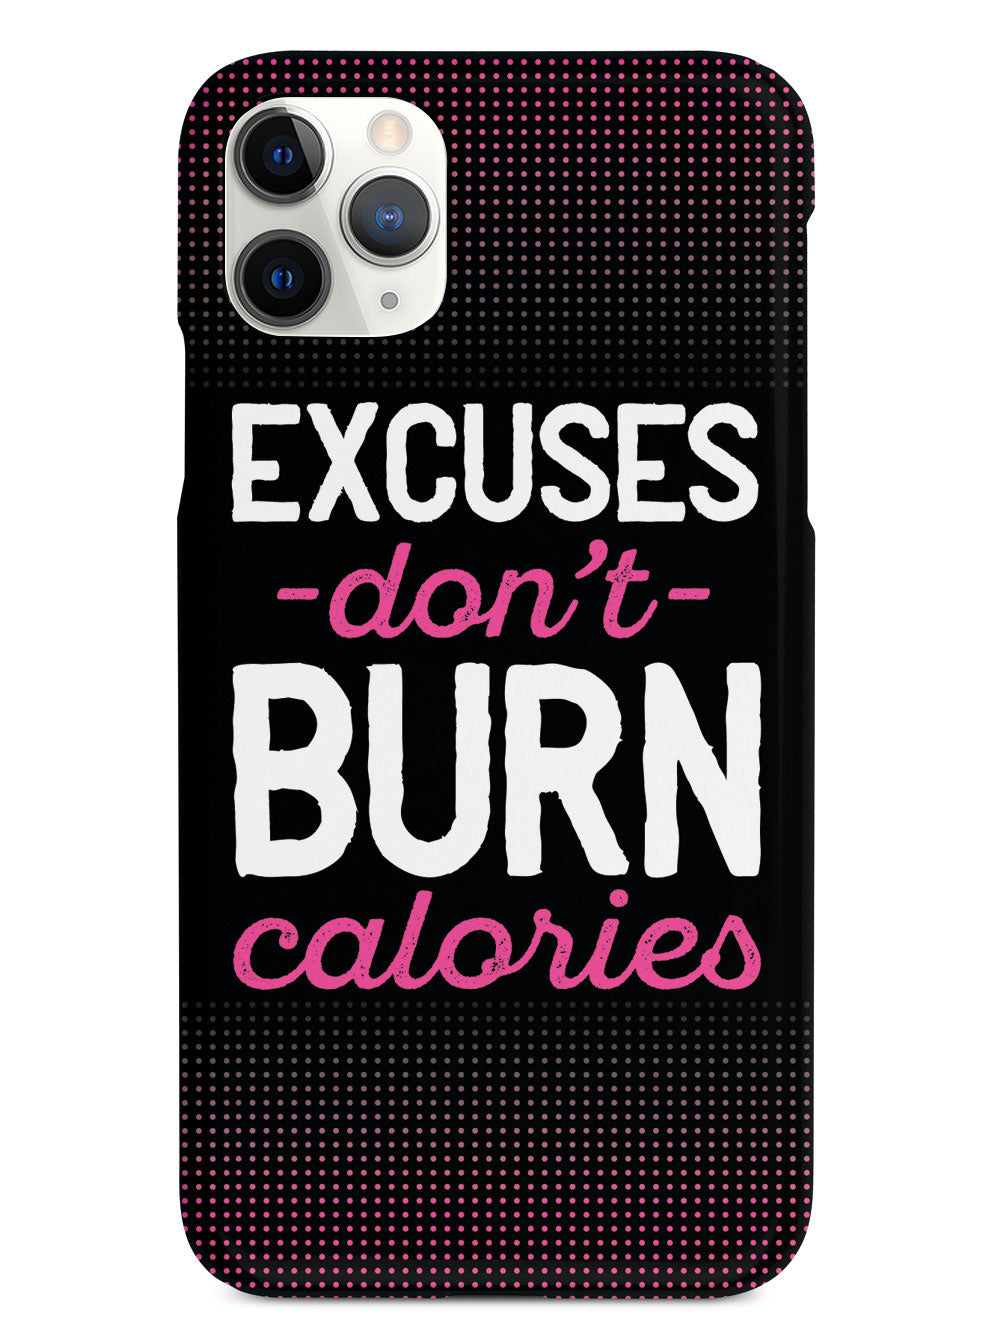 Excuses Don't Burn Calories - Fitness Case